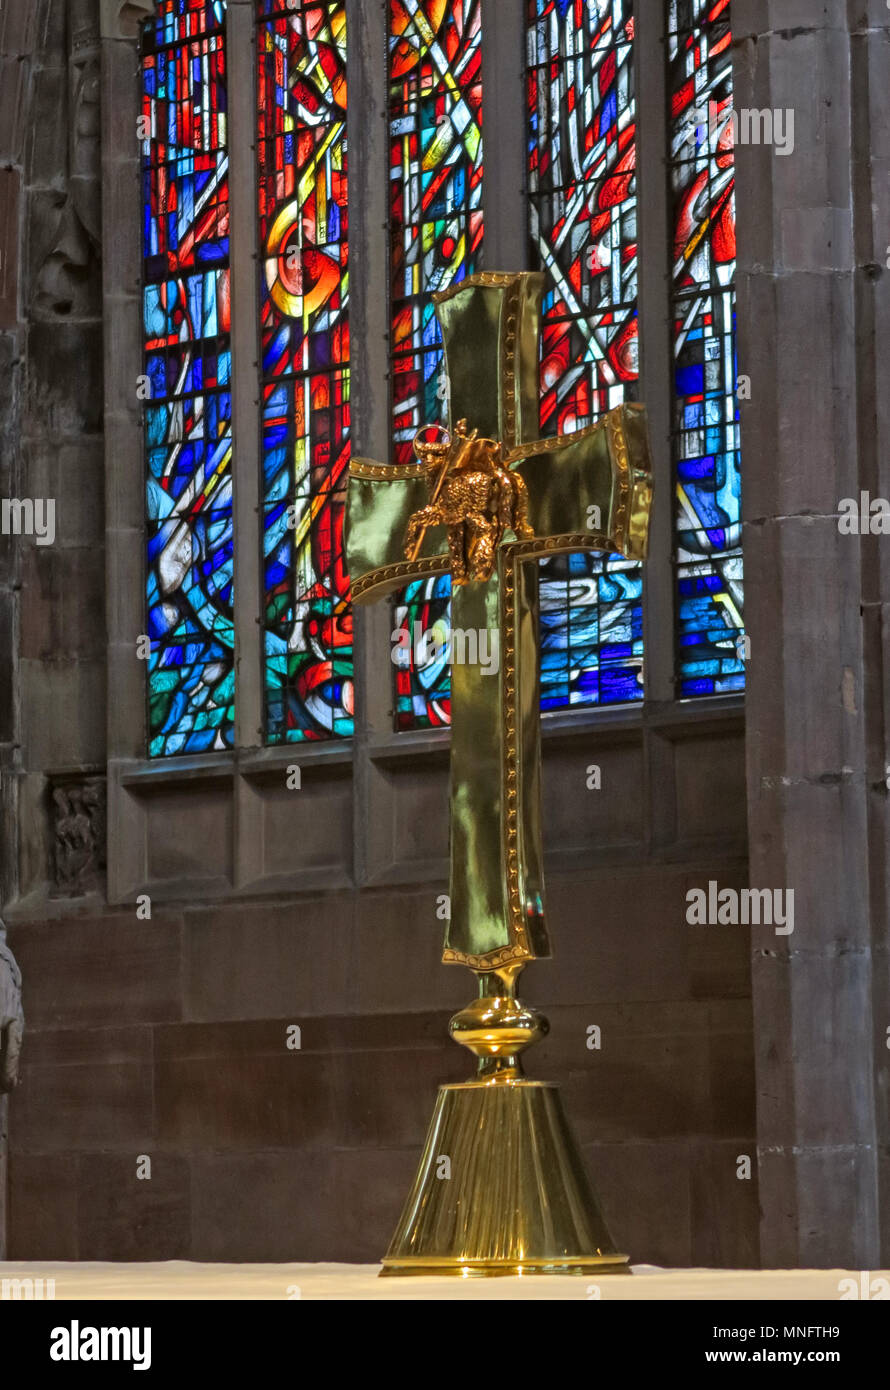 Brass cross on Manchester Cathedral altar, lancashire, England, UK - Stock Image